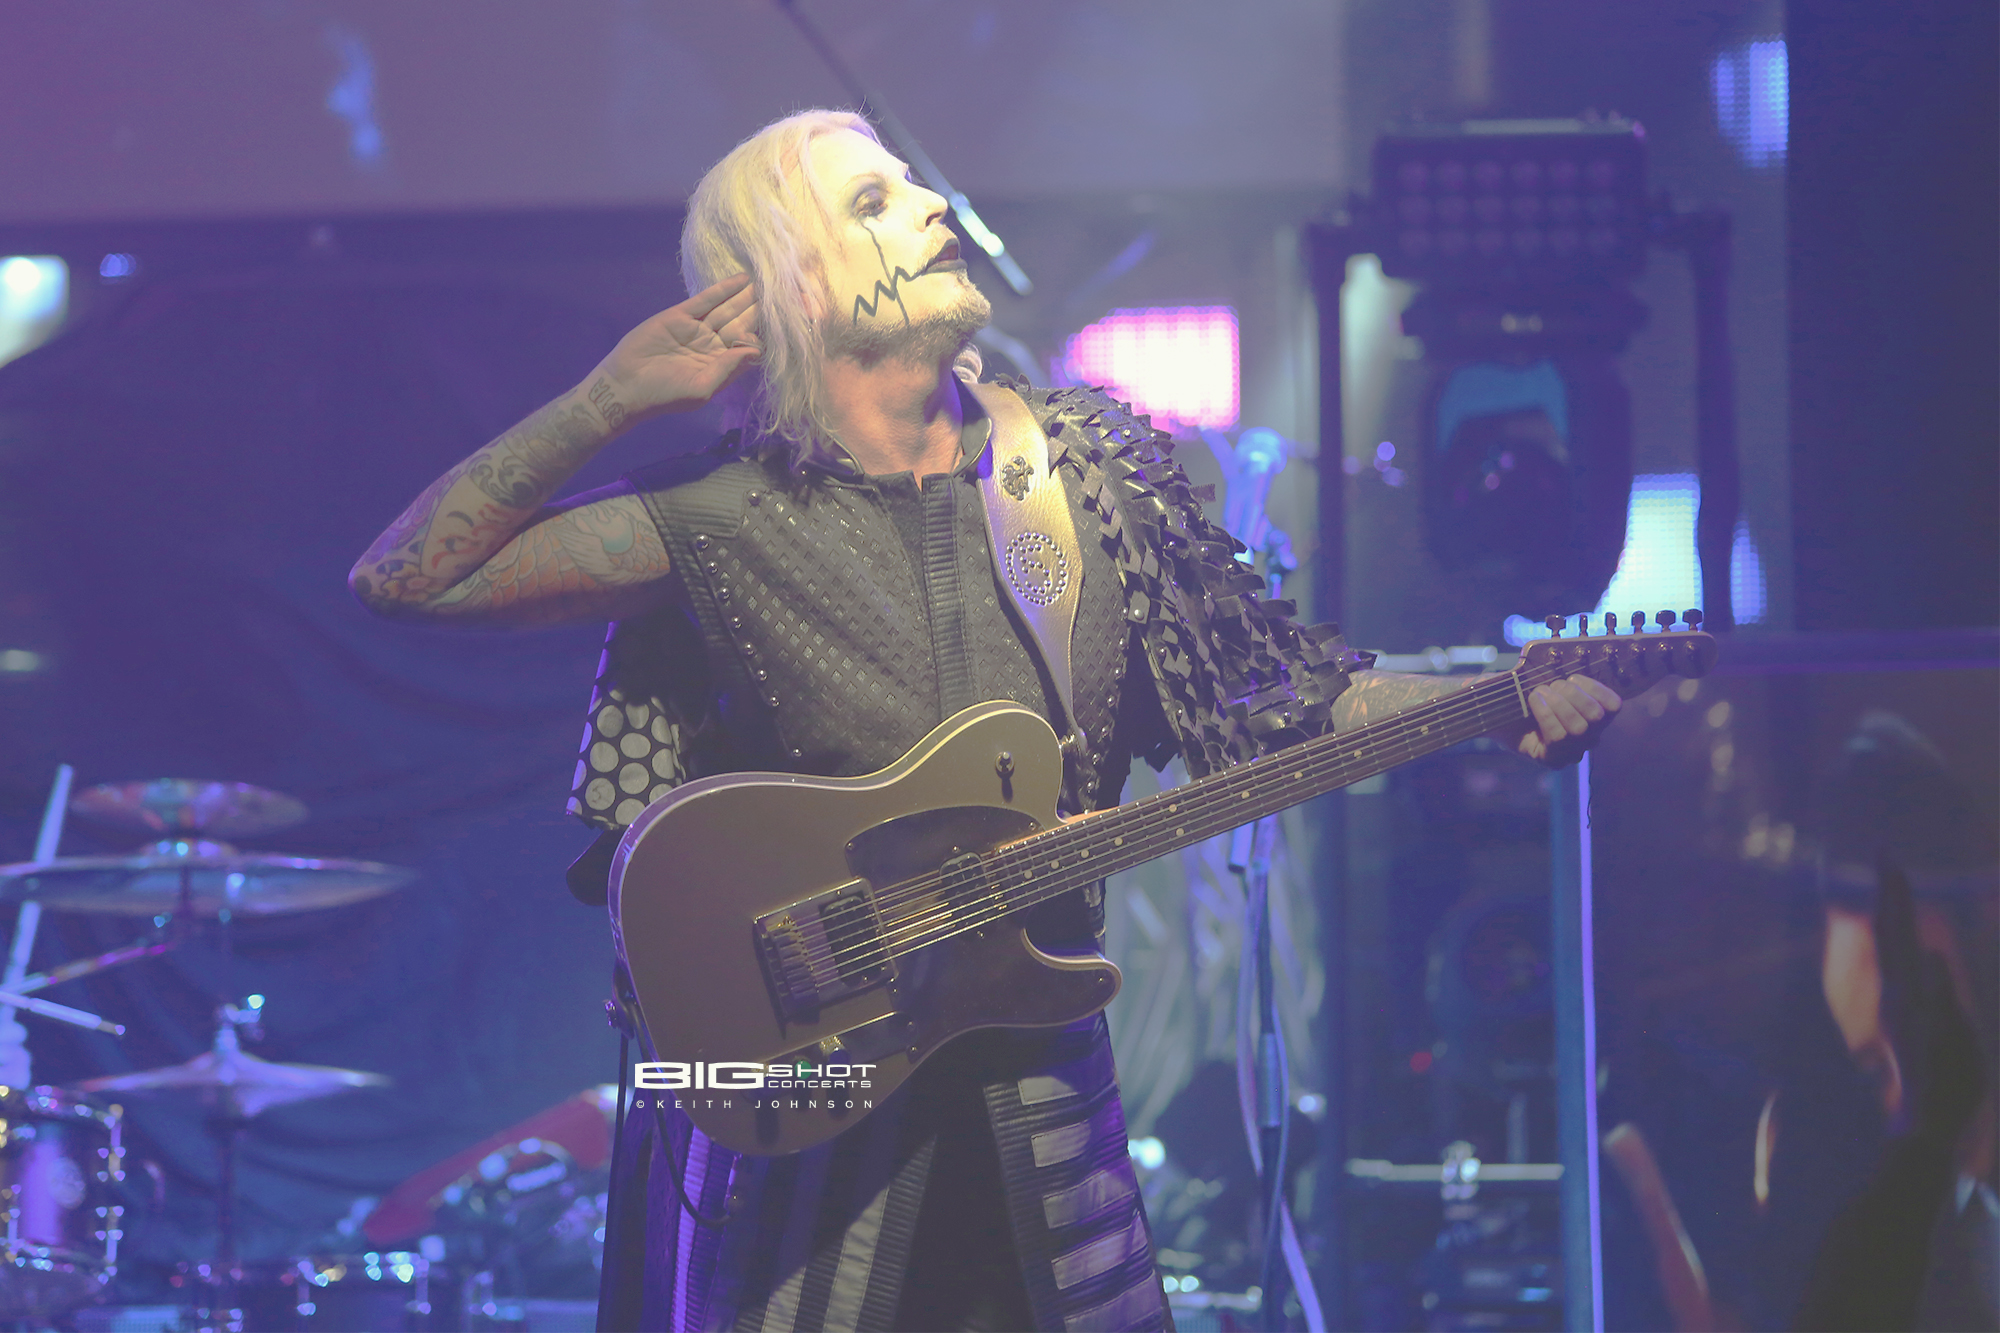 John 5 Live in Ft. Lauderdale